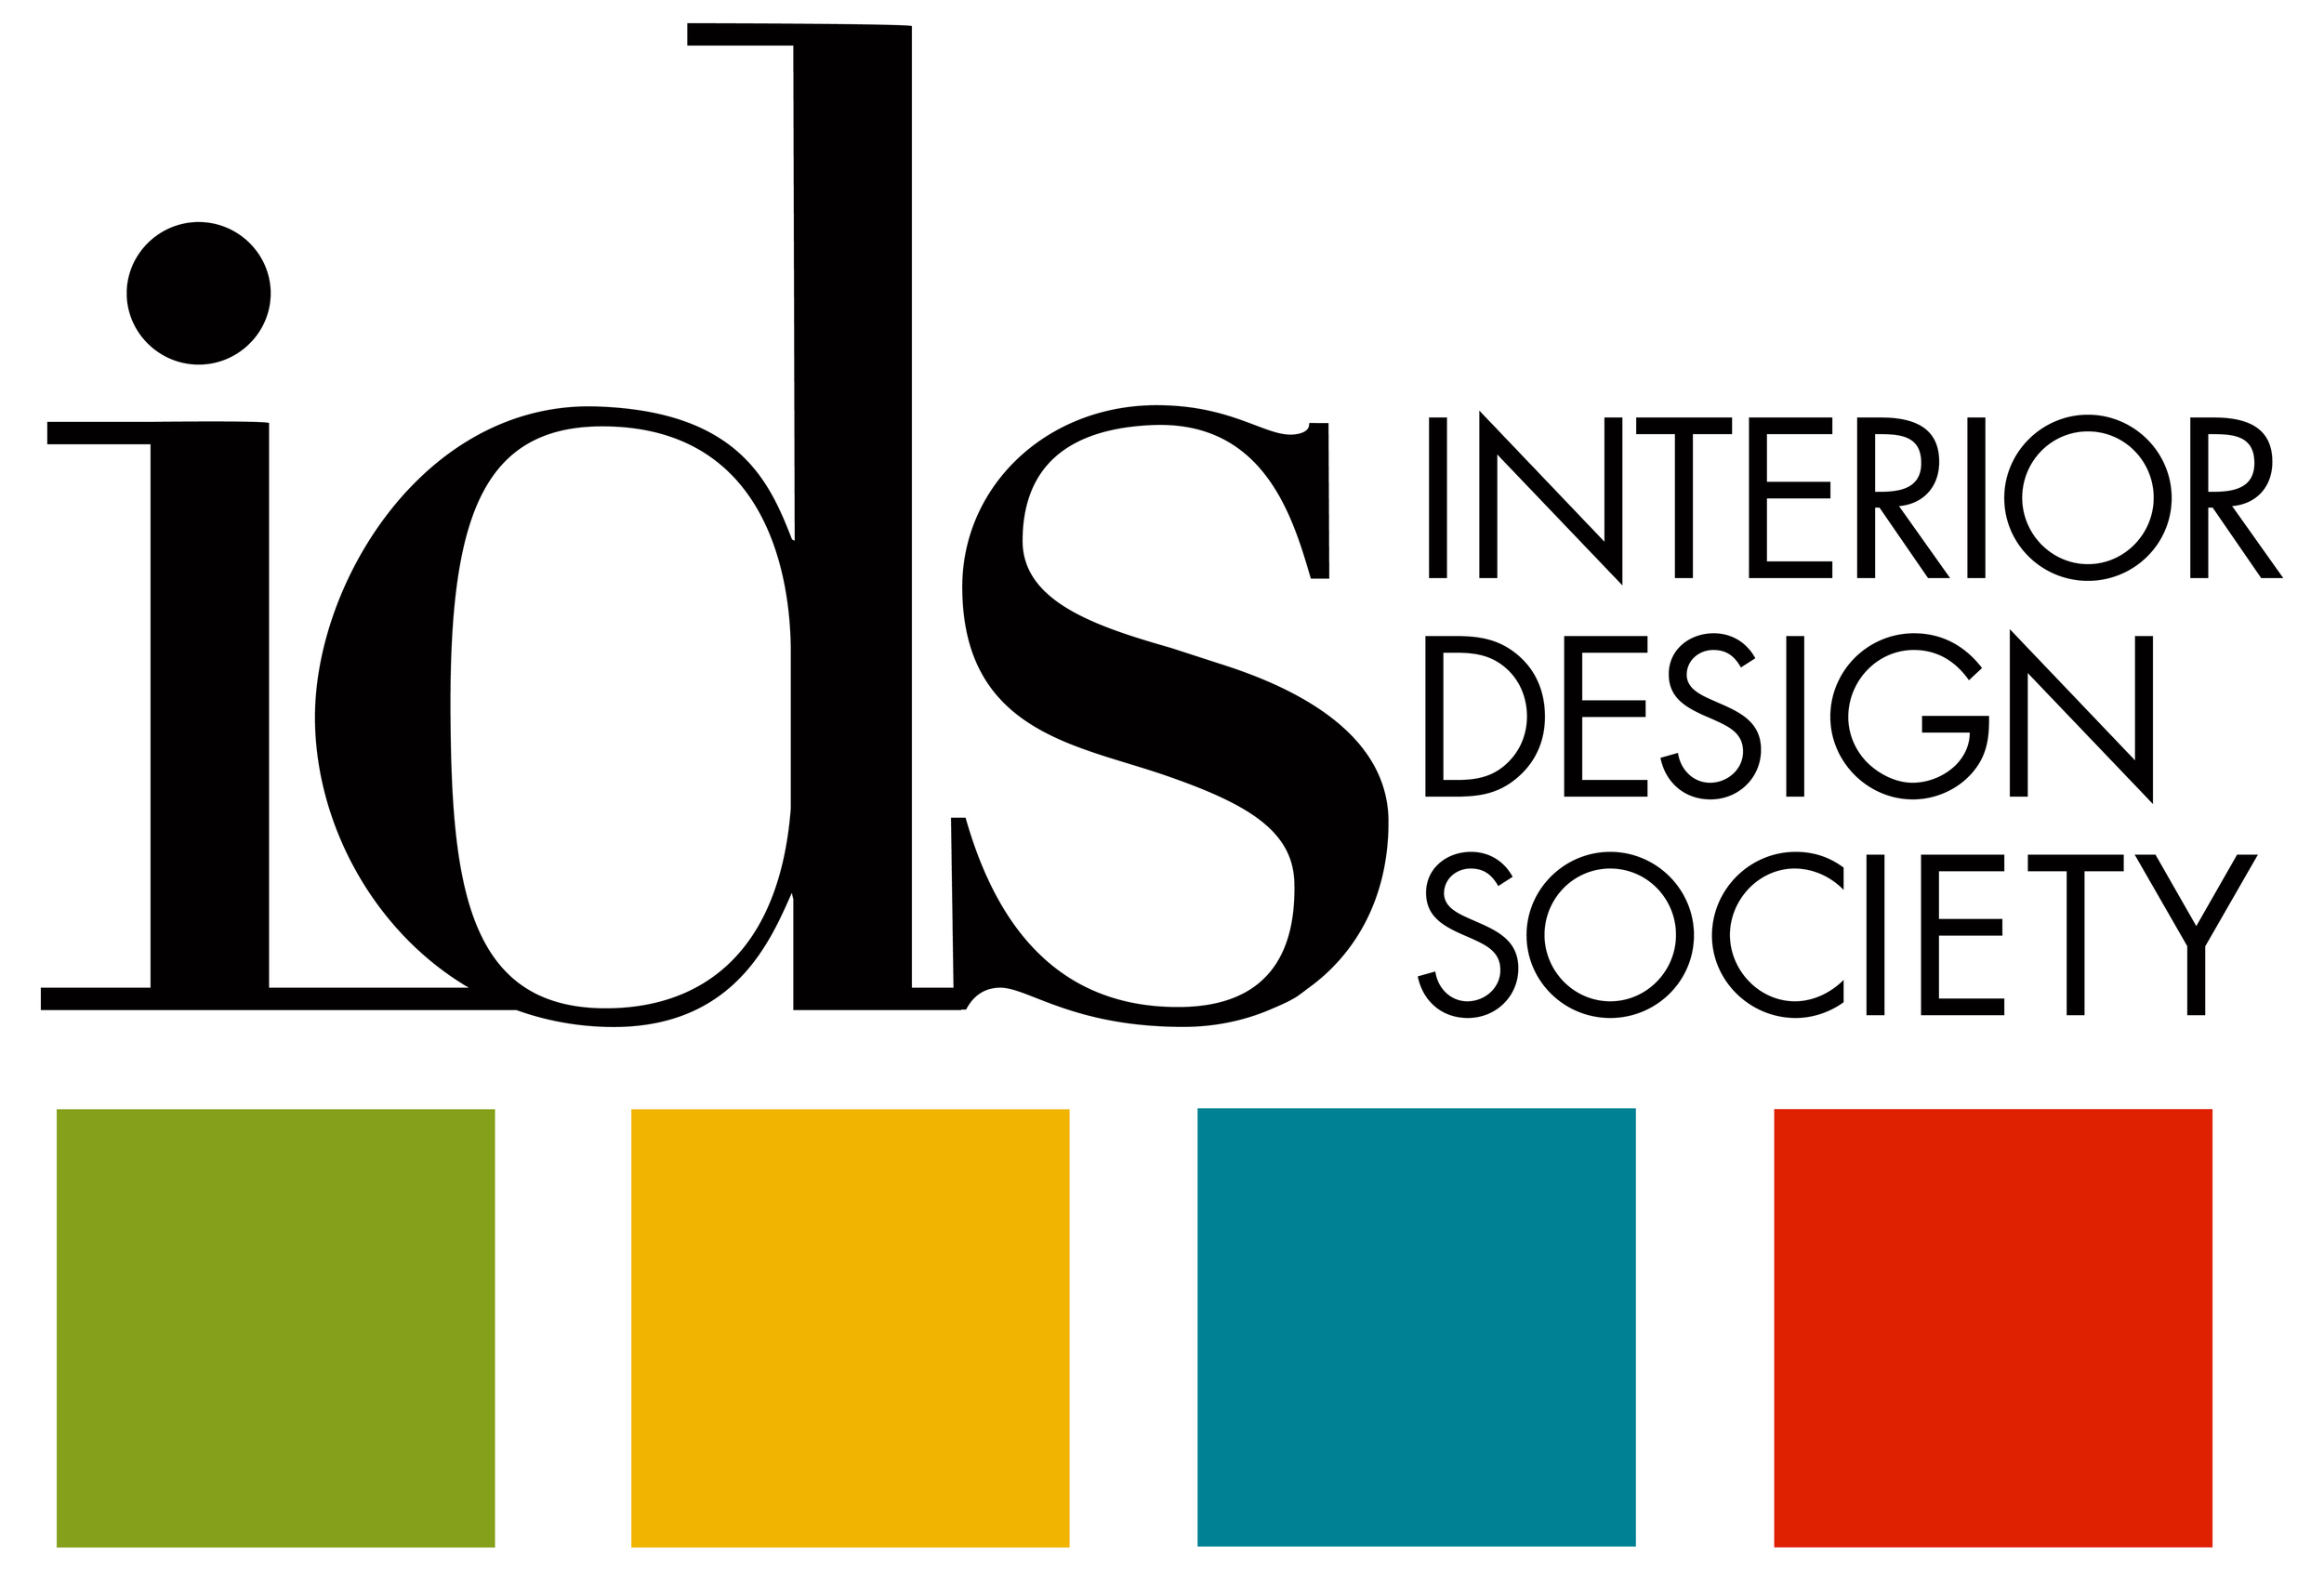 Kristi Spouse Interiors is a Associate Member of the Interior Design Society